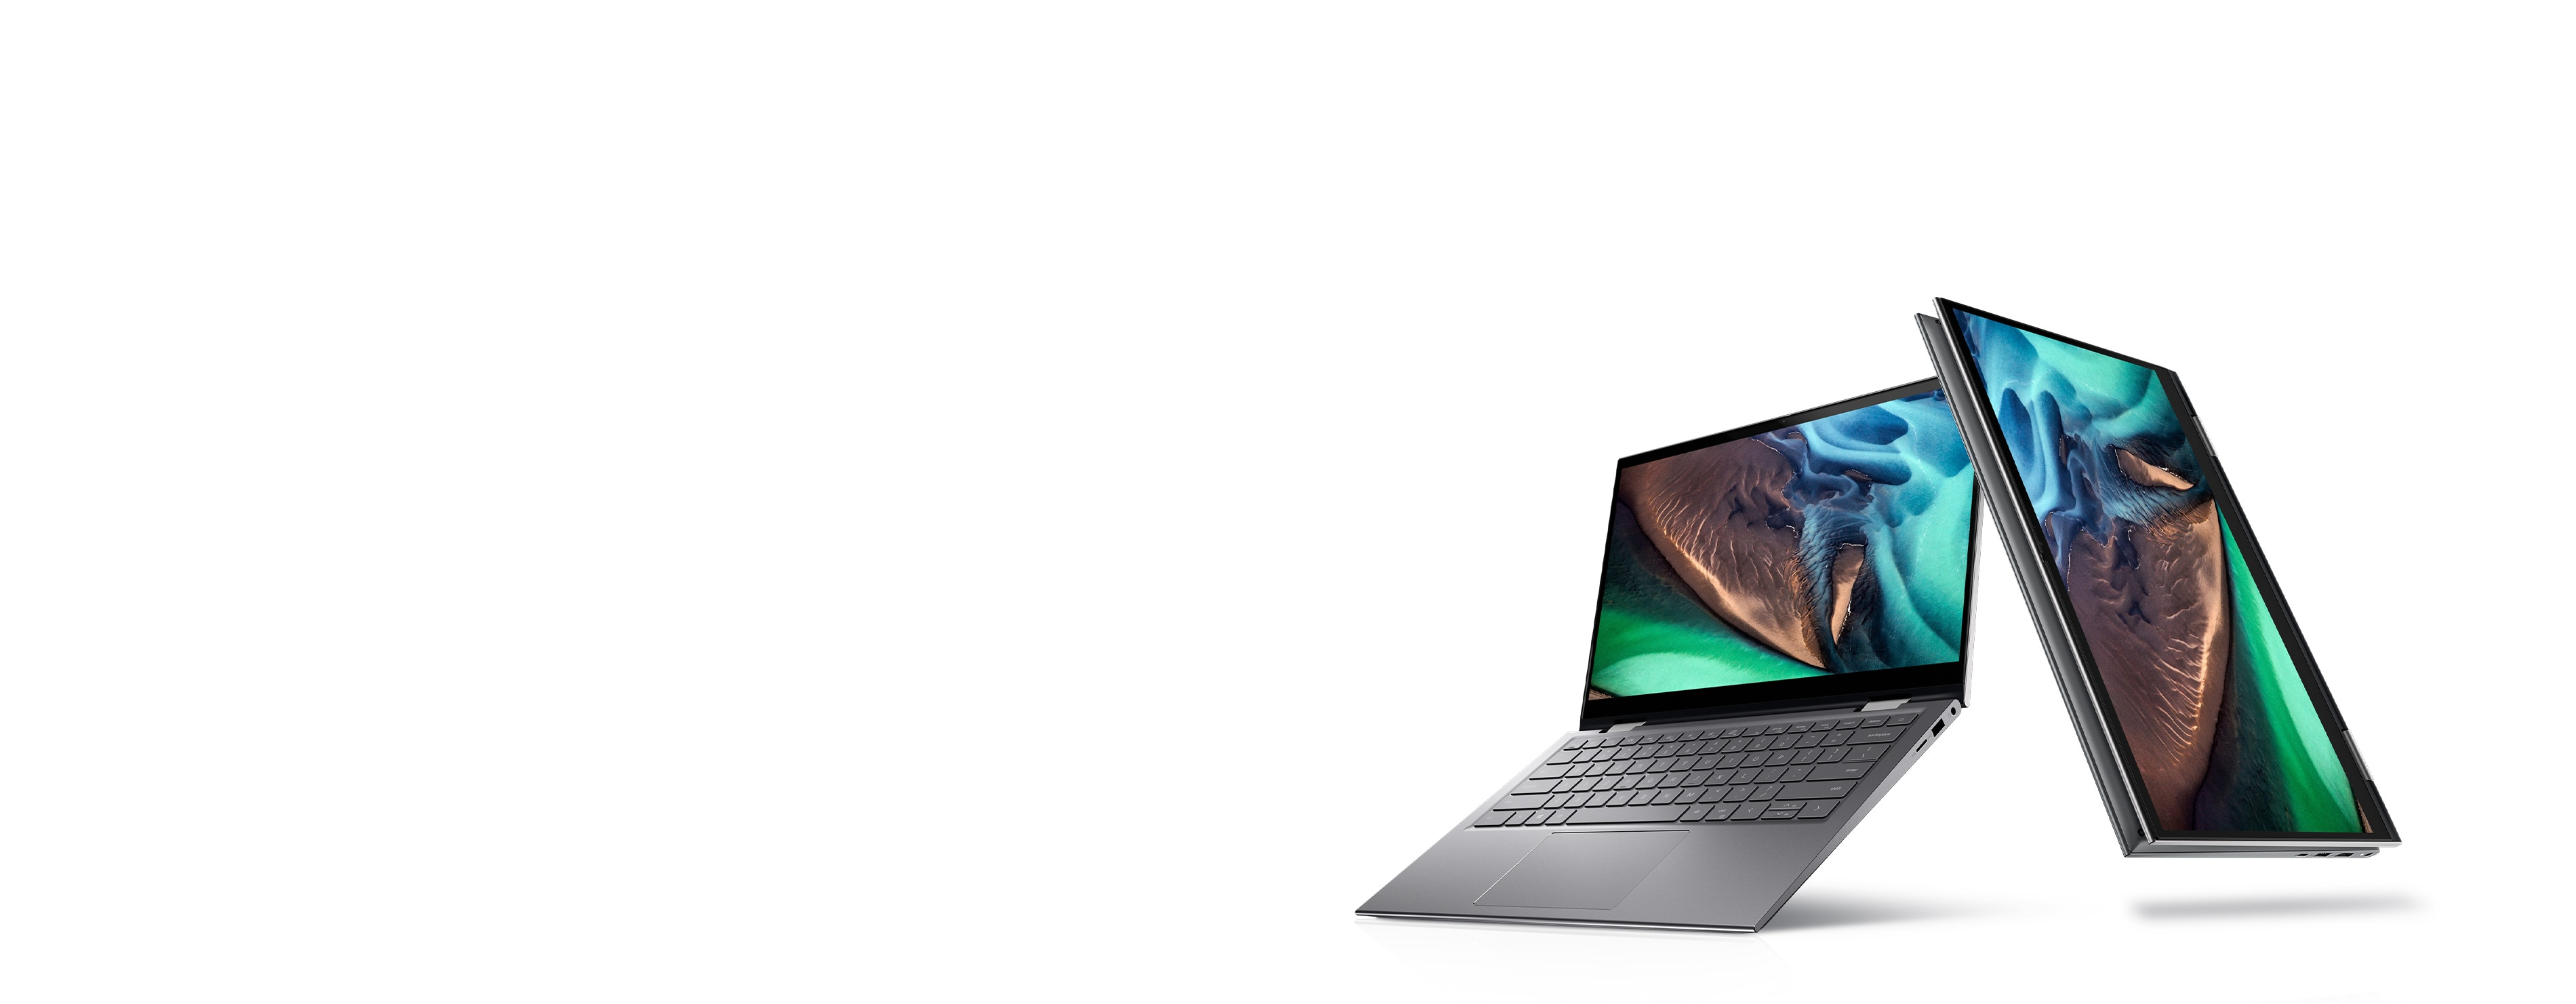 INSPIRON 2-IN-1S